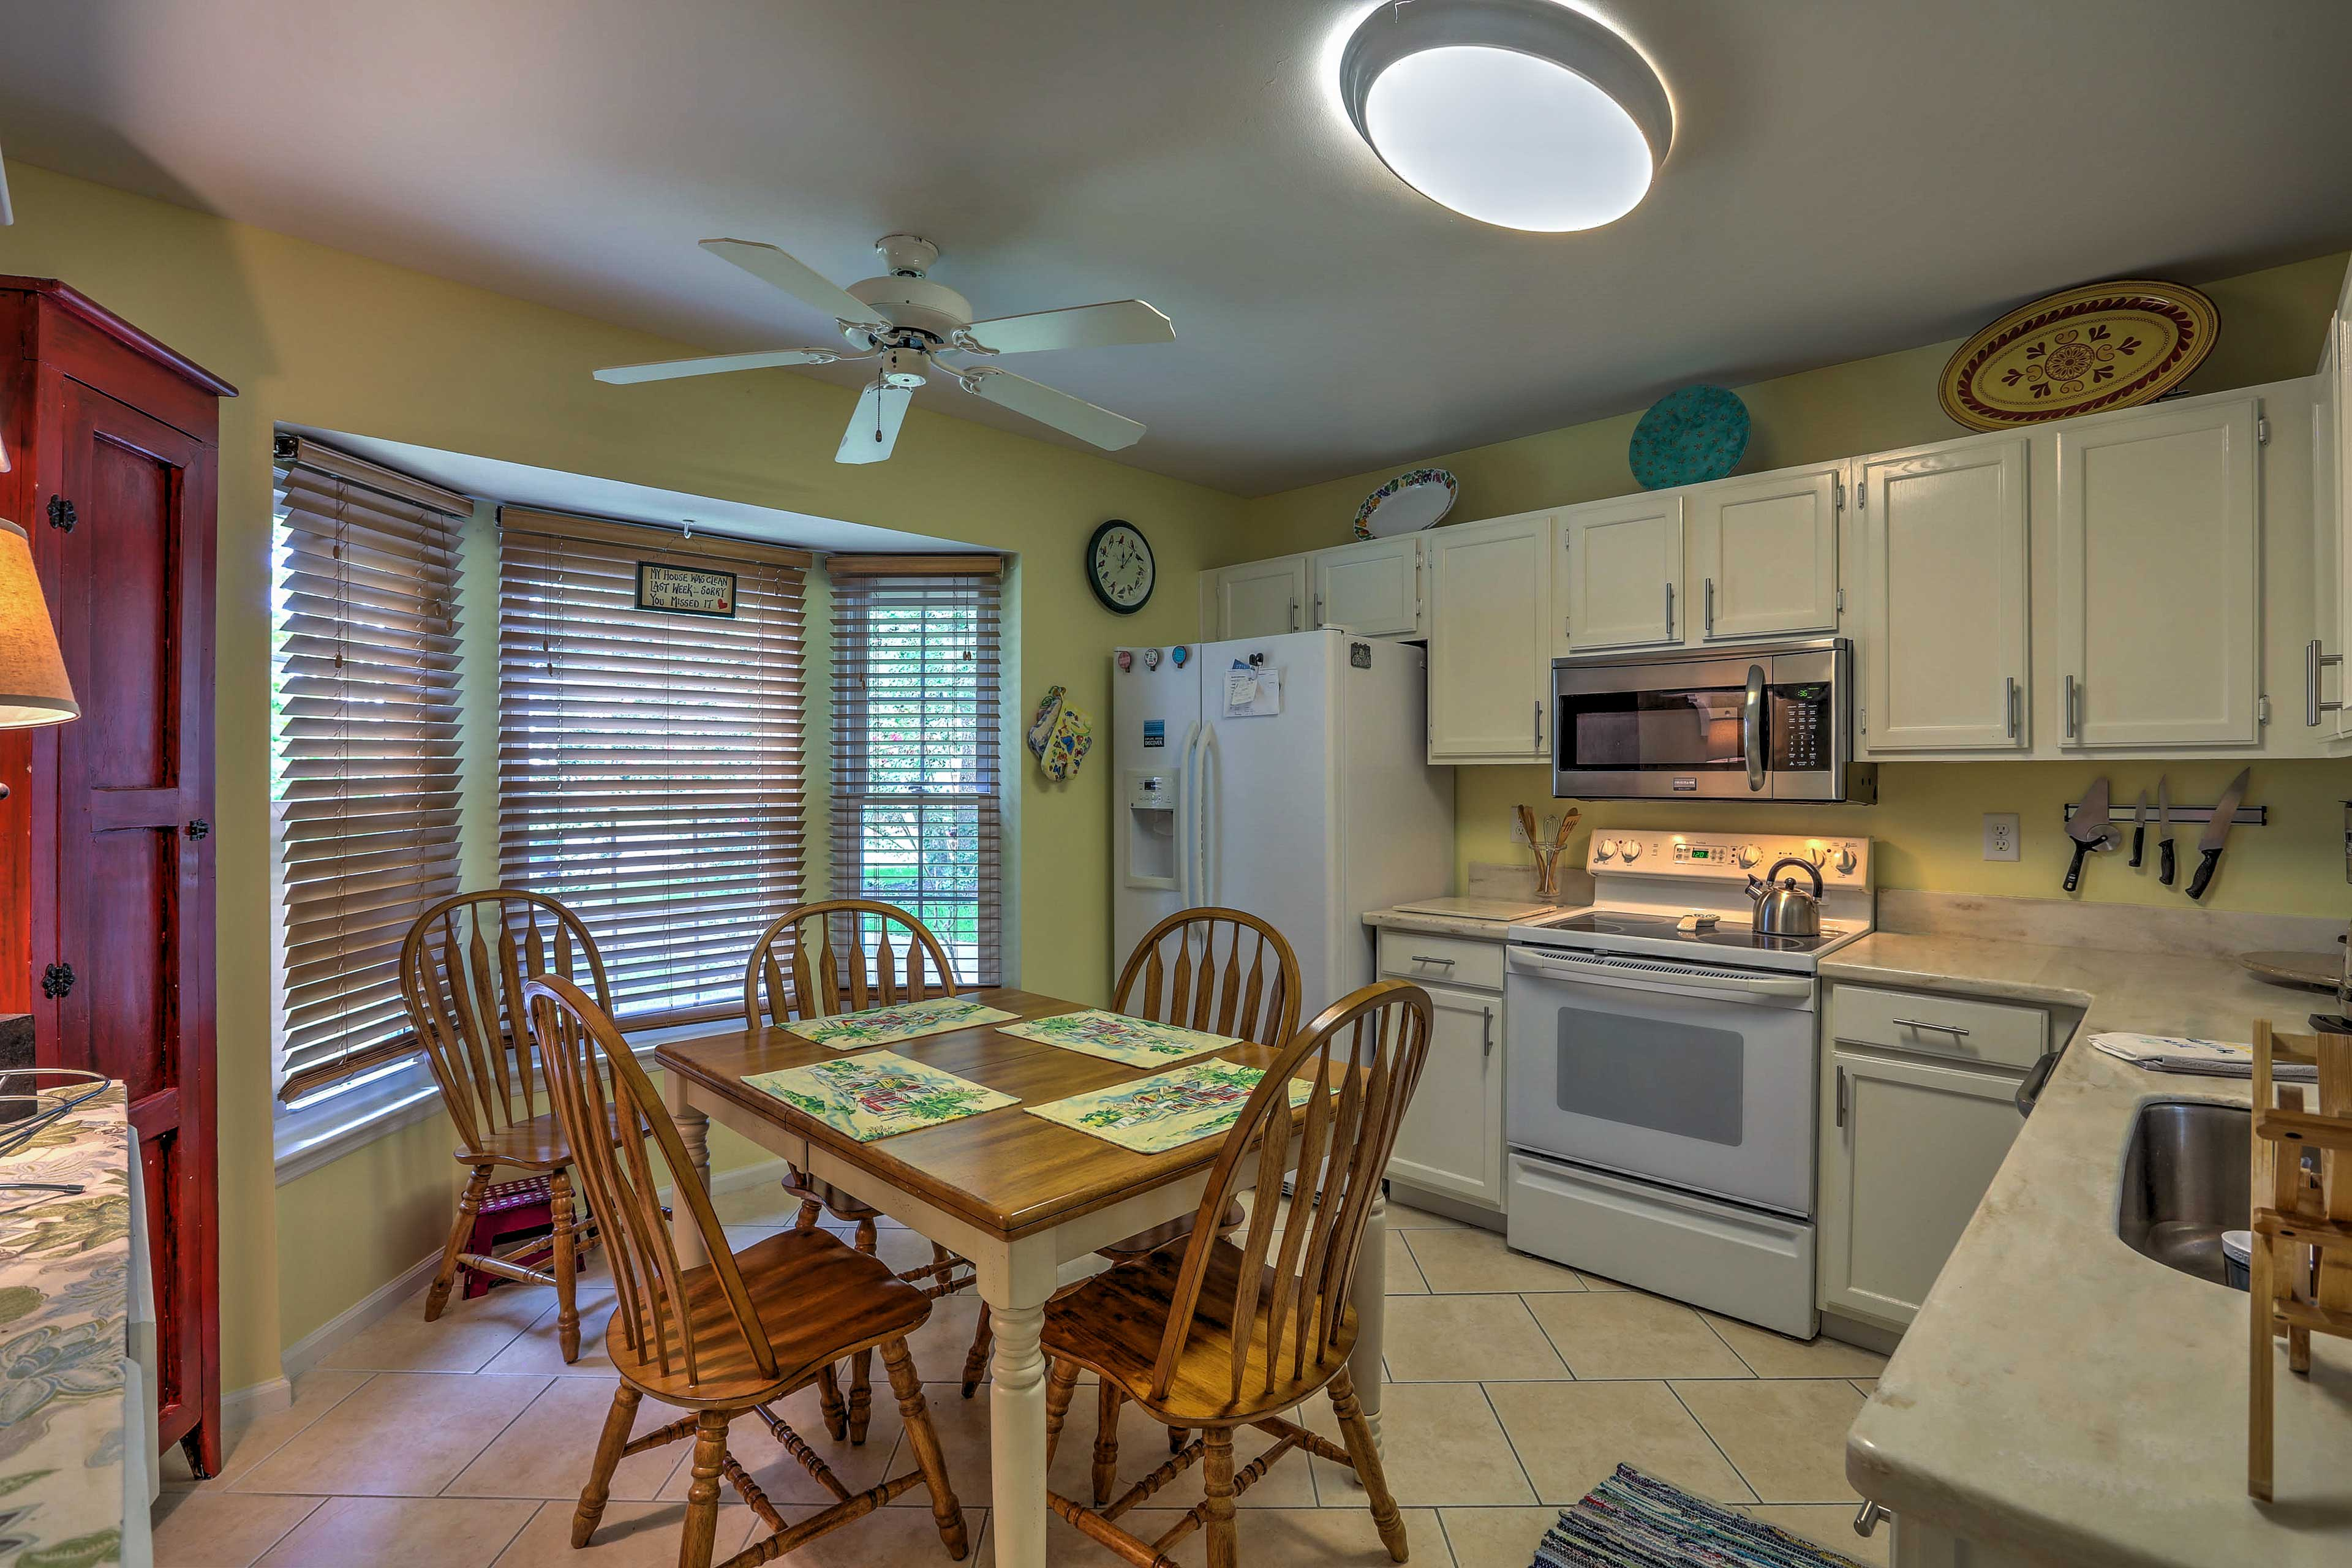 The fully equipped kitchen provides everything you'll need to whip up recipes.